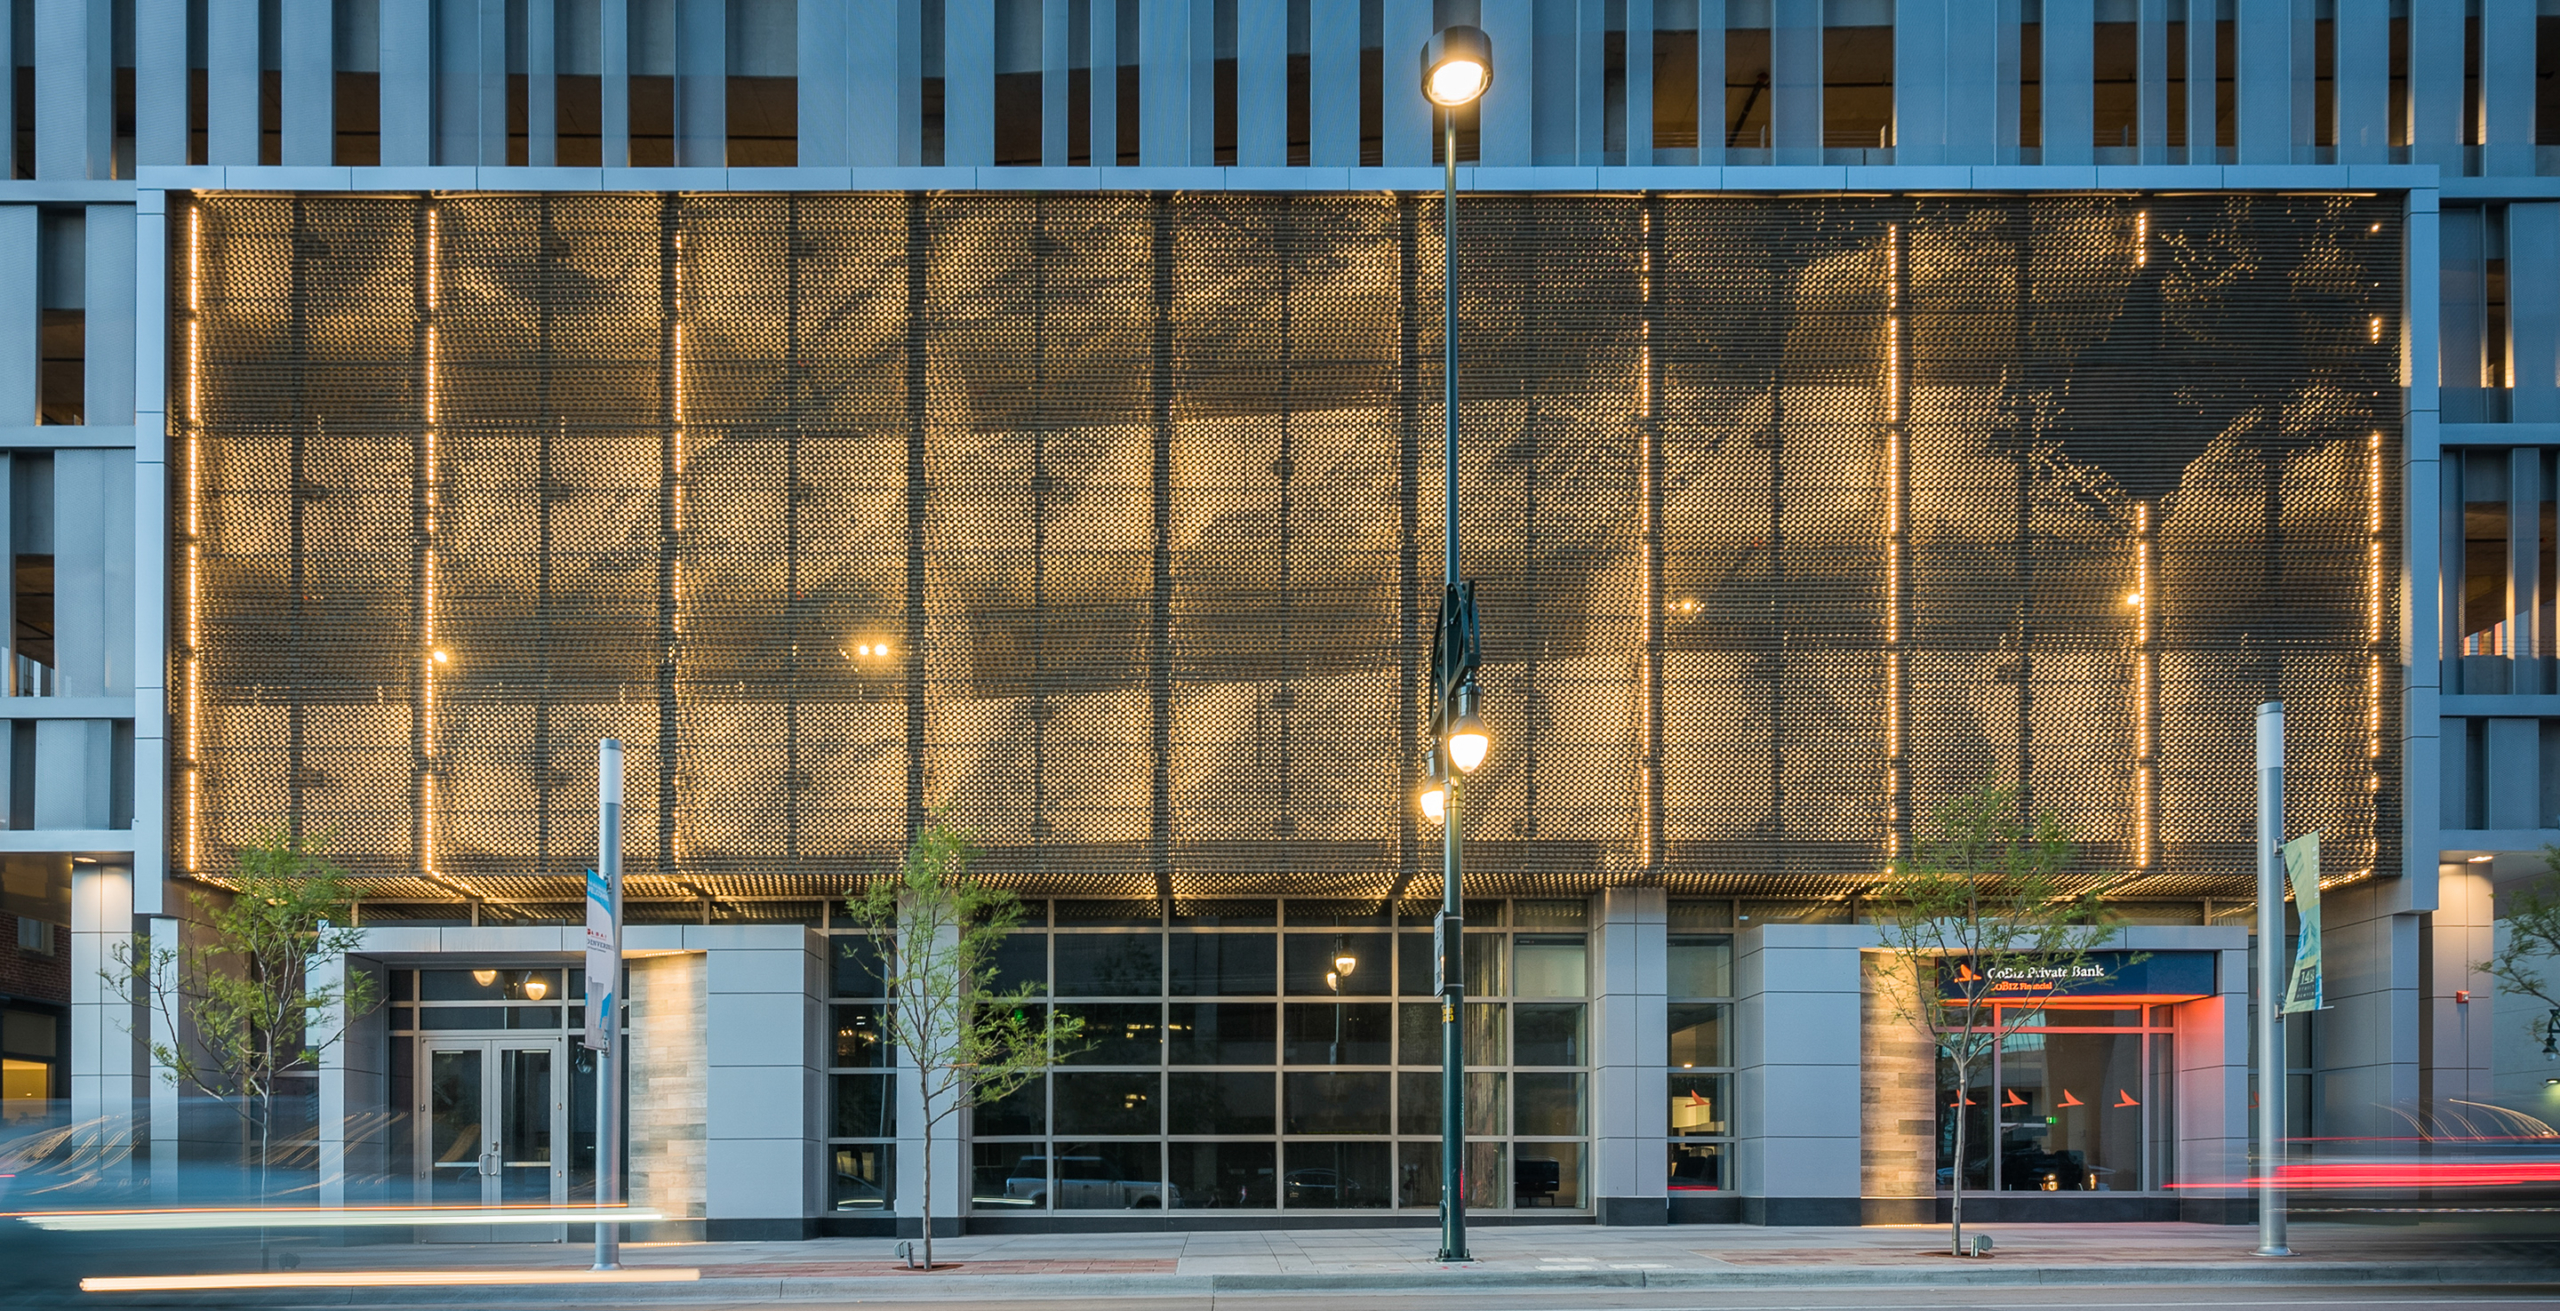 Elevation showing the perforated metal soffit entrance at the 1401 Lawrence building.